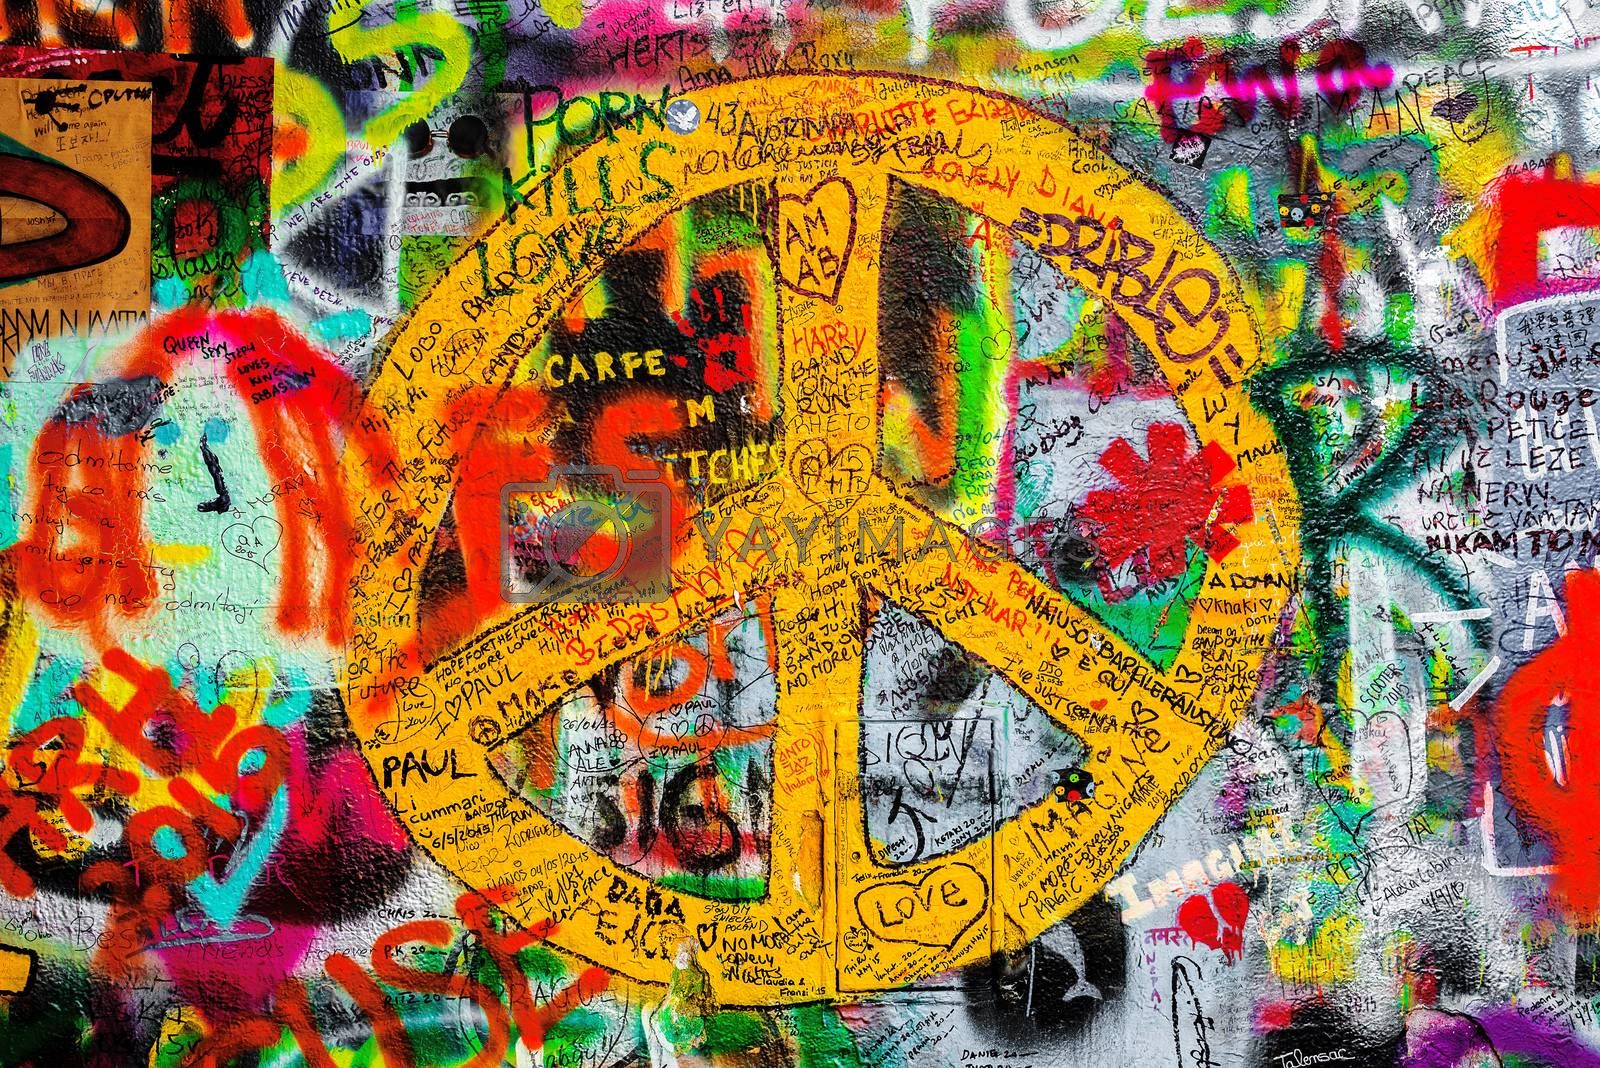 PRAGUE, CZECH REPUBLIC - MAY 21, 2015: Peace Sign on Famous John Lennon Wall on Kampa Island in Prague filled with Beatles inspired graffiti and lyrics since the 1980s.